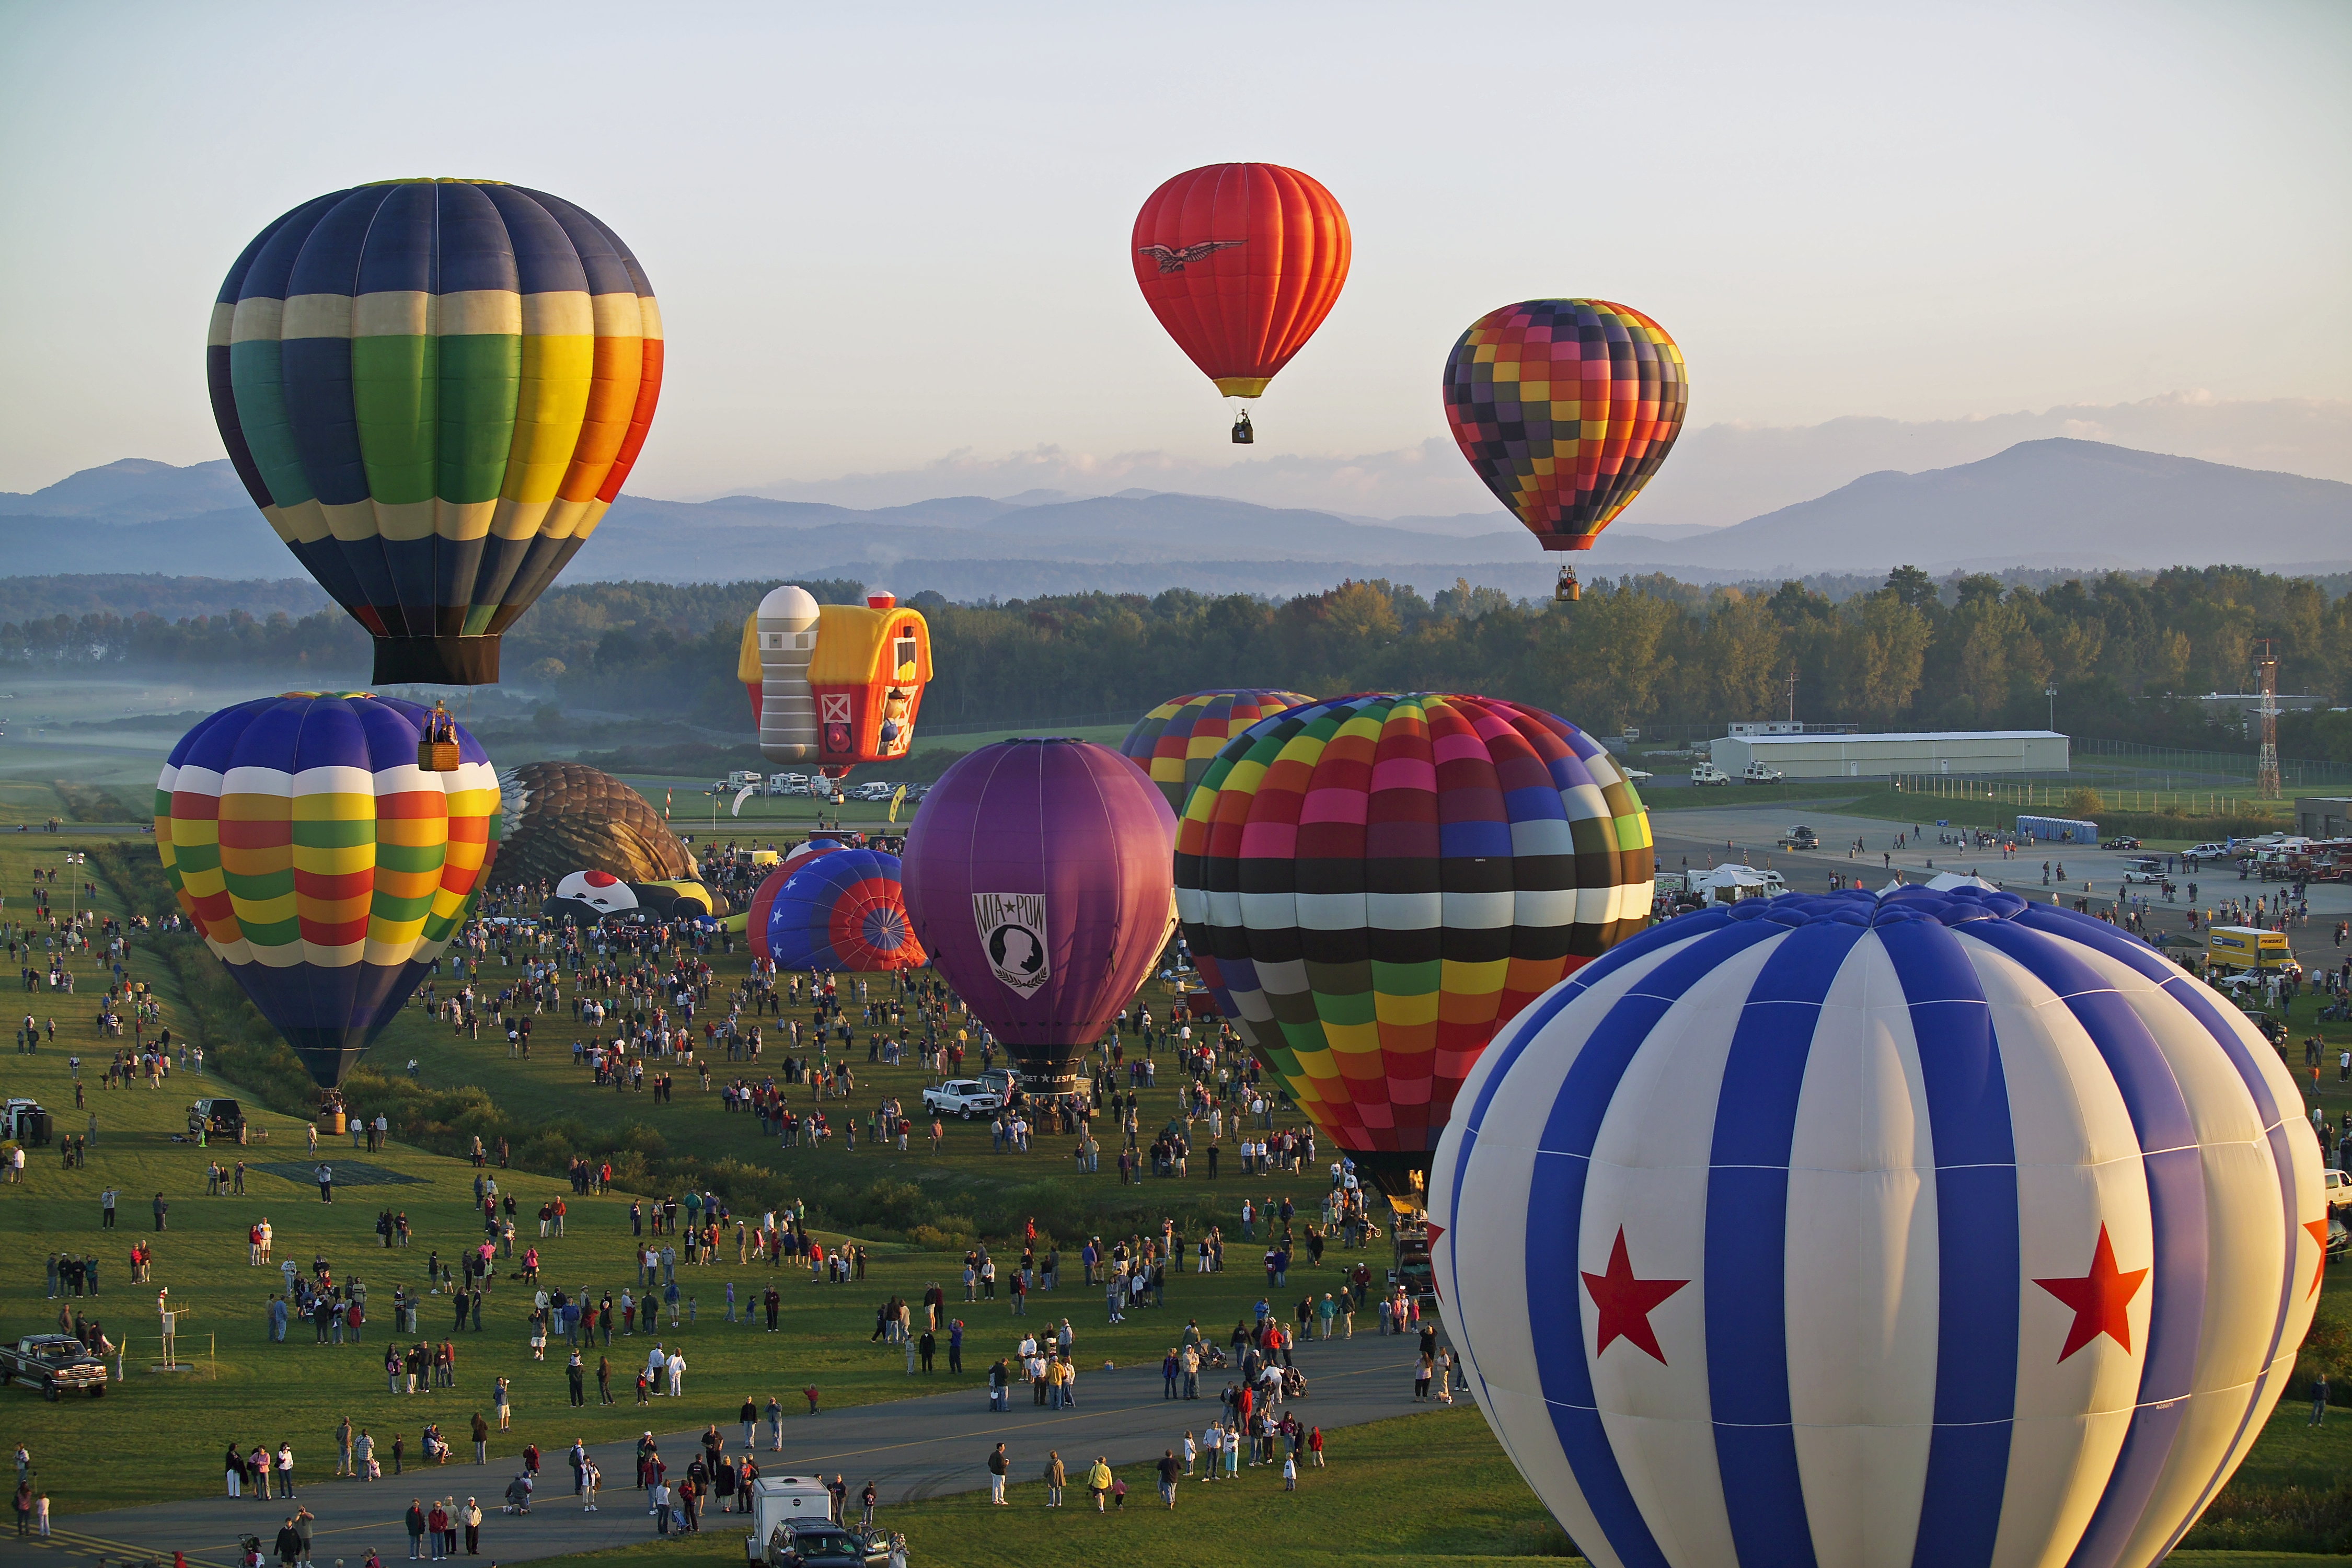 travel specialist top where places see air tour to visiting hot balloon go cappadocia turkey chandelier